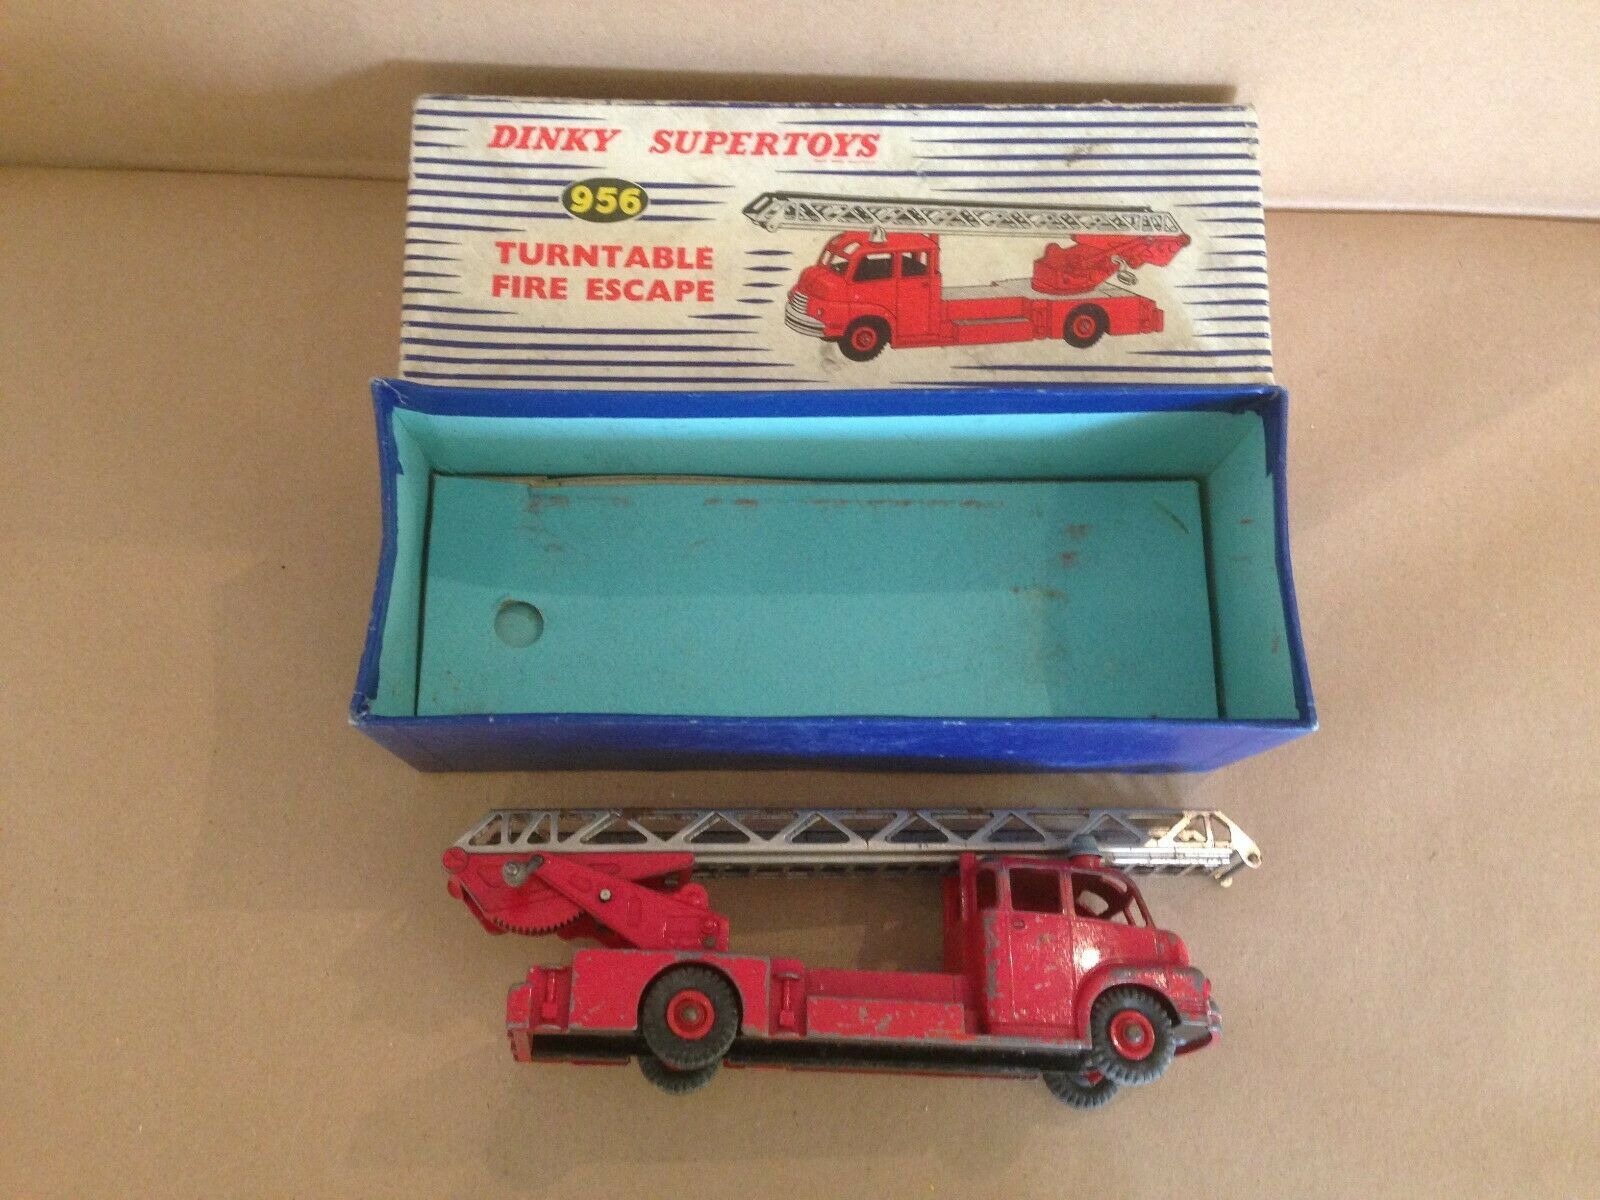 Dinky Supertoys Fire Engine 956 Turntable Fire Escape, original in in in original box 3cd923